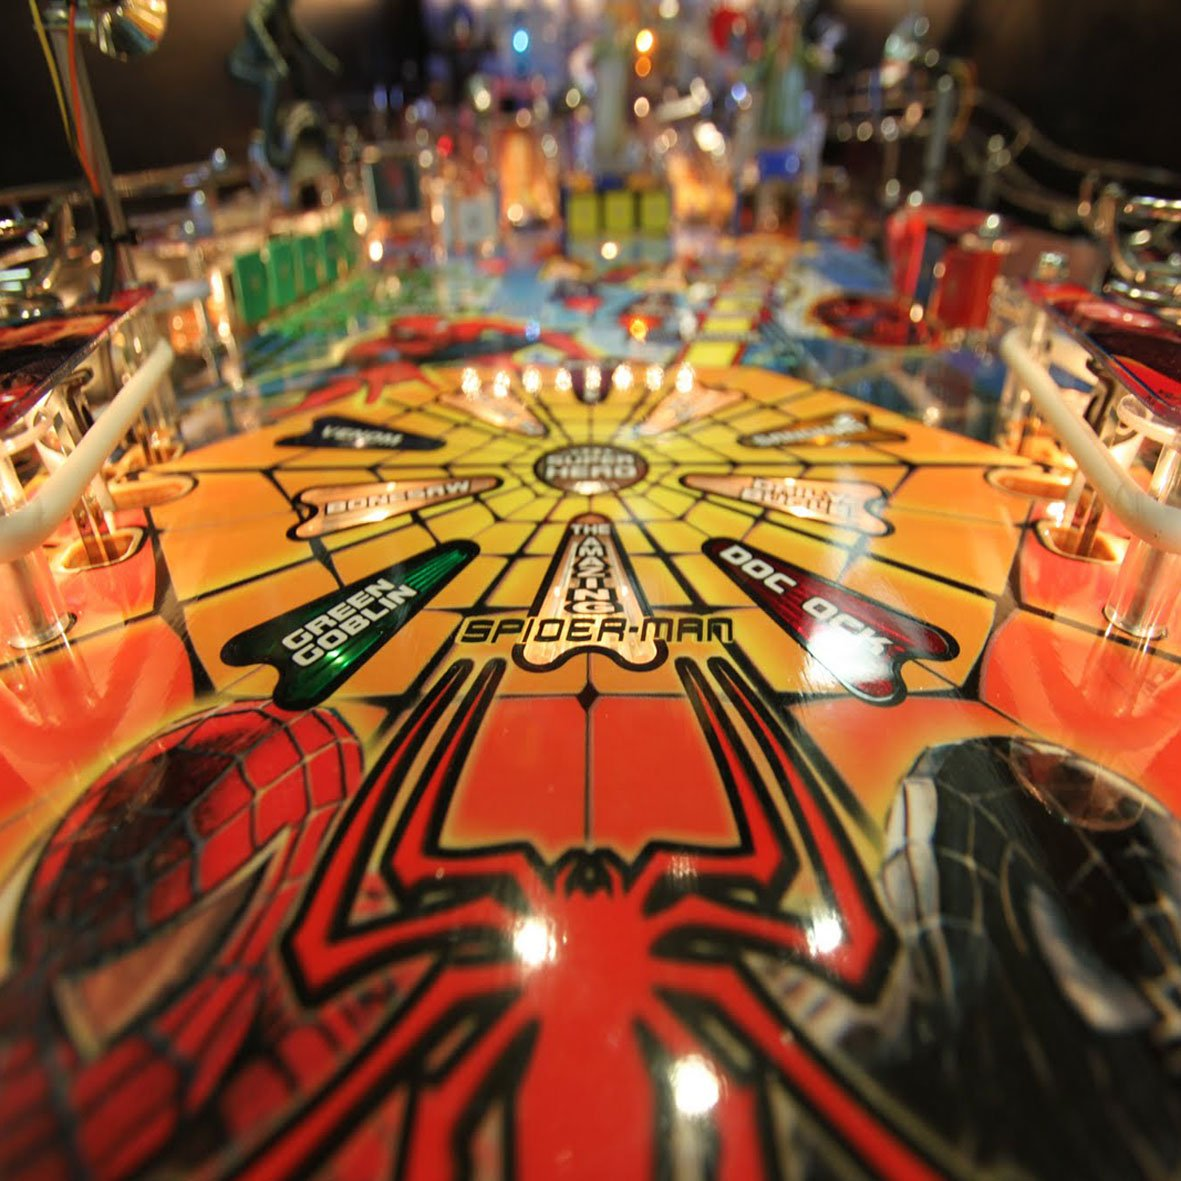 Spiderman Pinball Machine